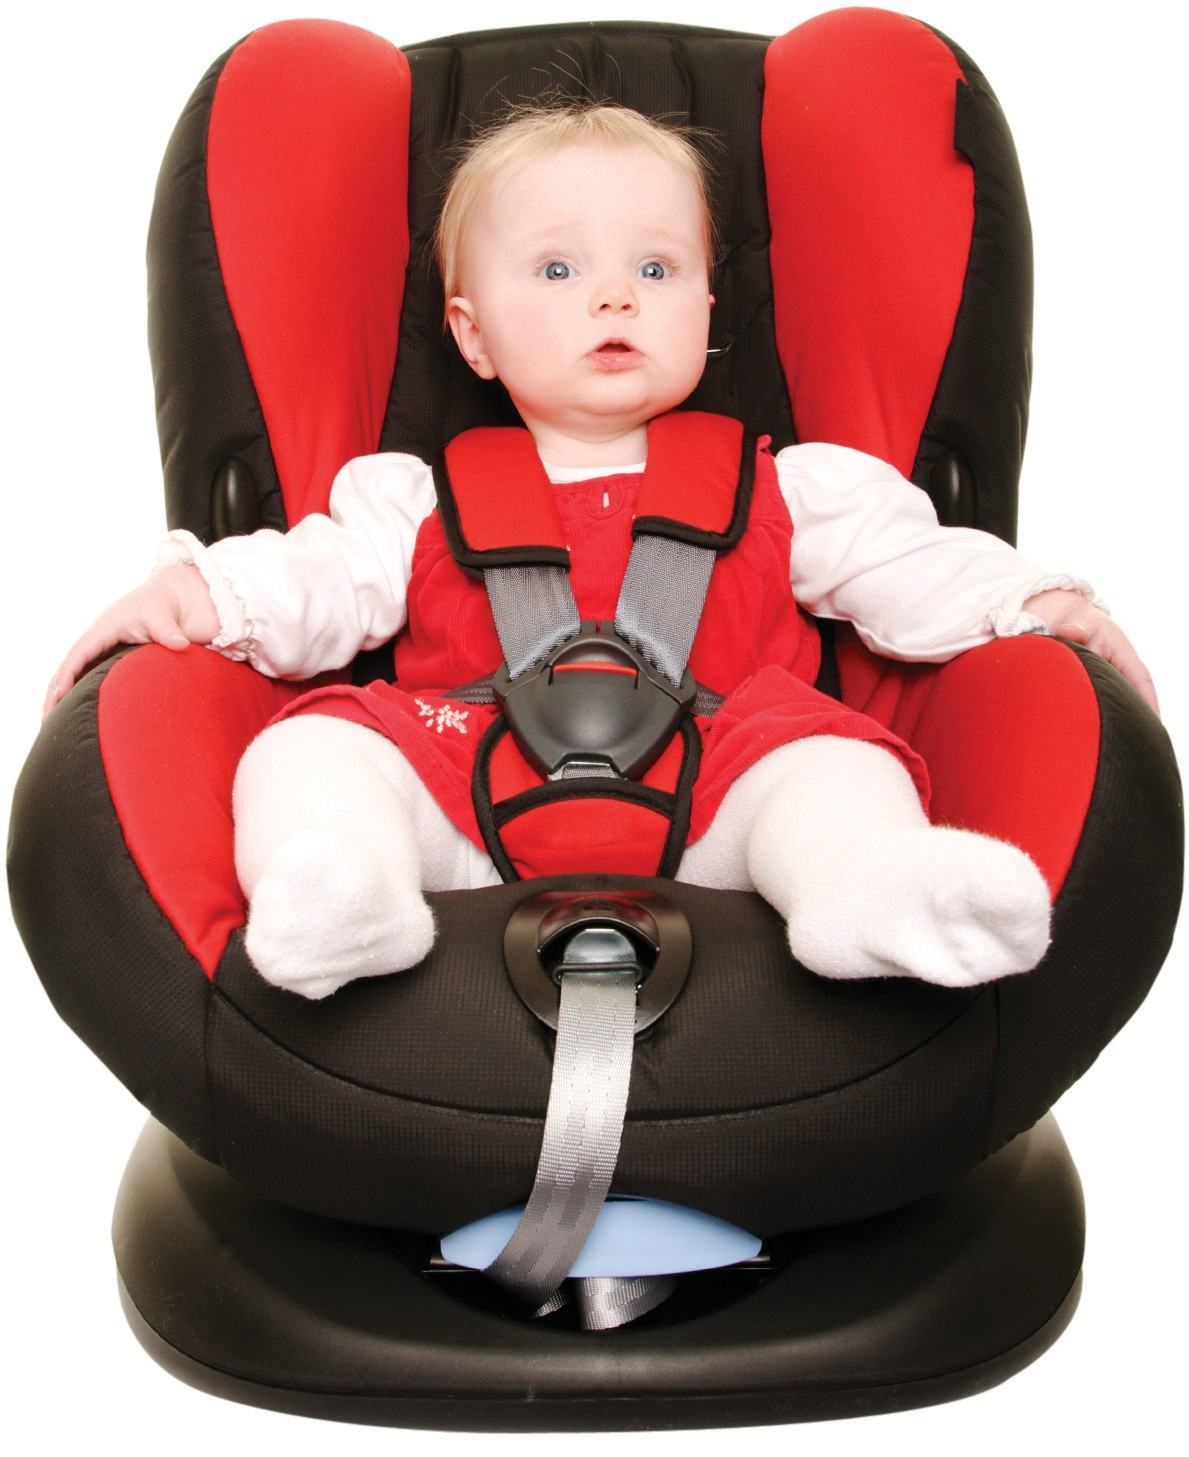 The Childrens Hospital Of Southwest Florida Kohls Center For Safety Program Will Be Providing Free Car Seat Inspections From 9 Am To Noon